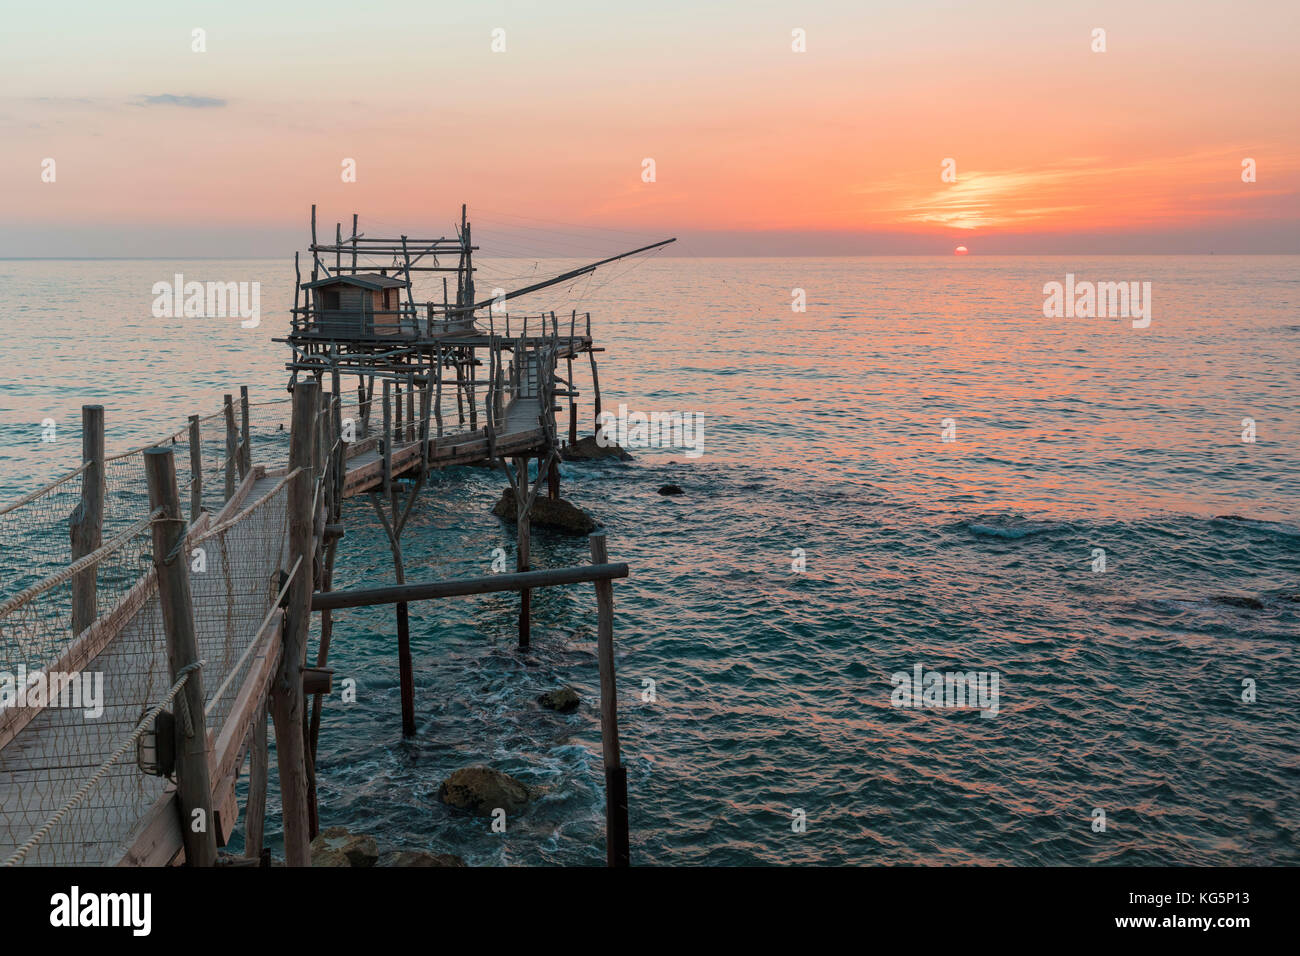 View of Costa dei Trabocchi, Trabocco is an old fishing machine typical of the coast of Abruzzo District, Adriatic - Stock Image